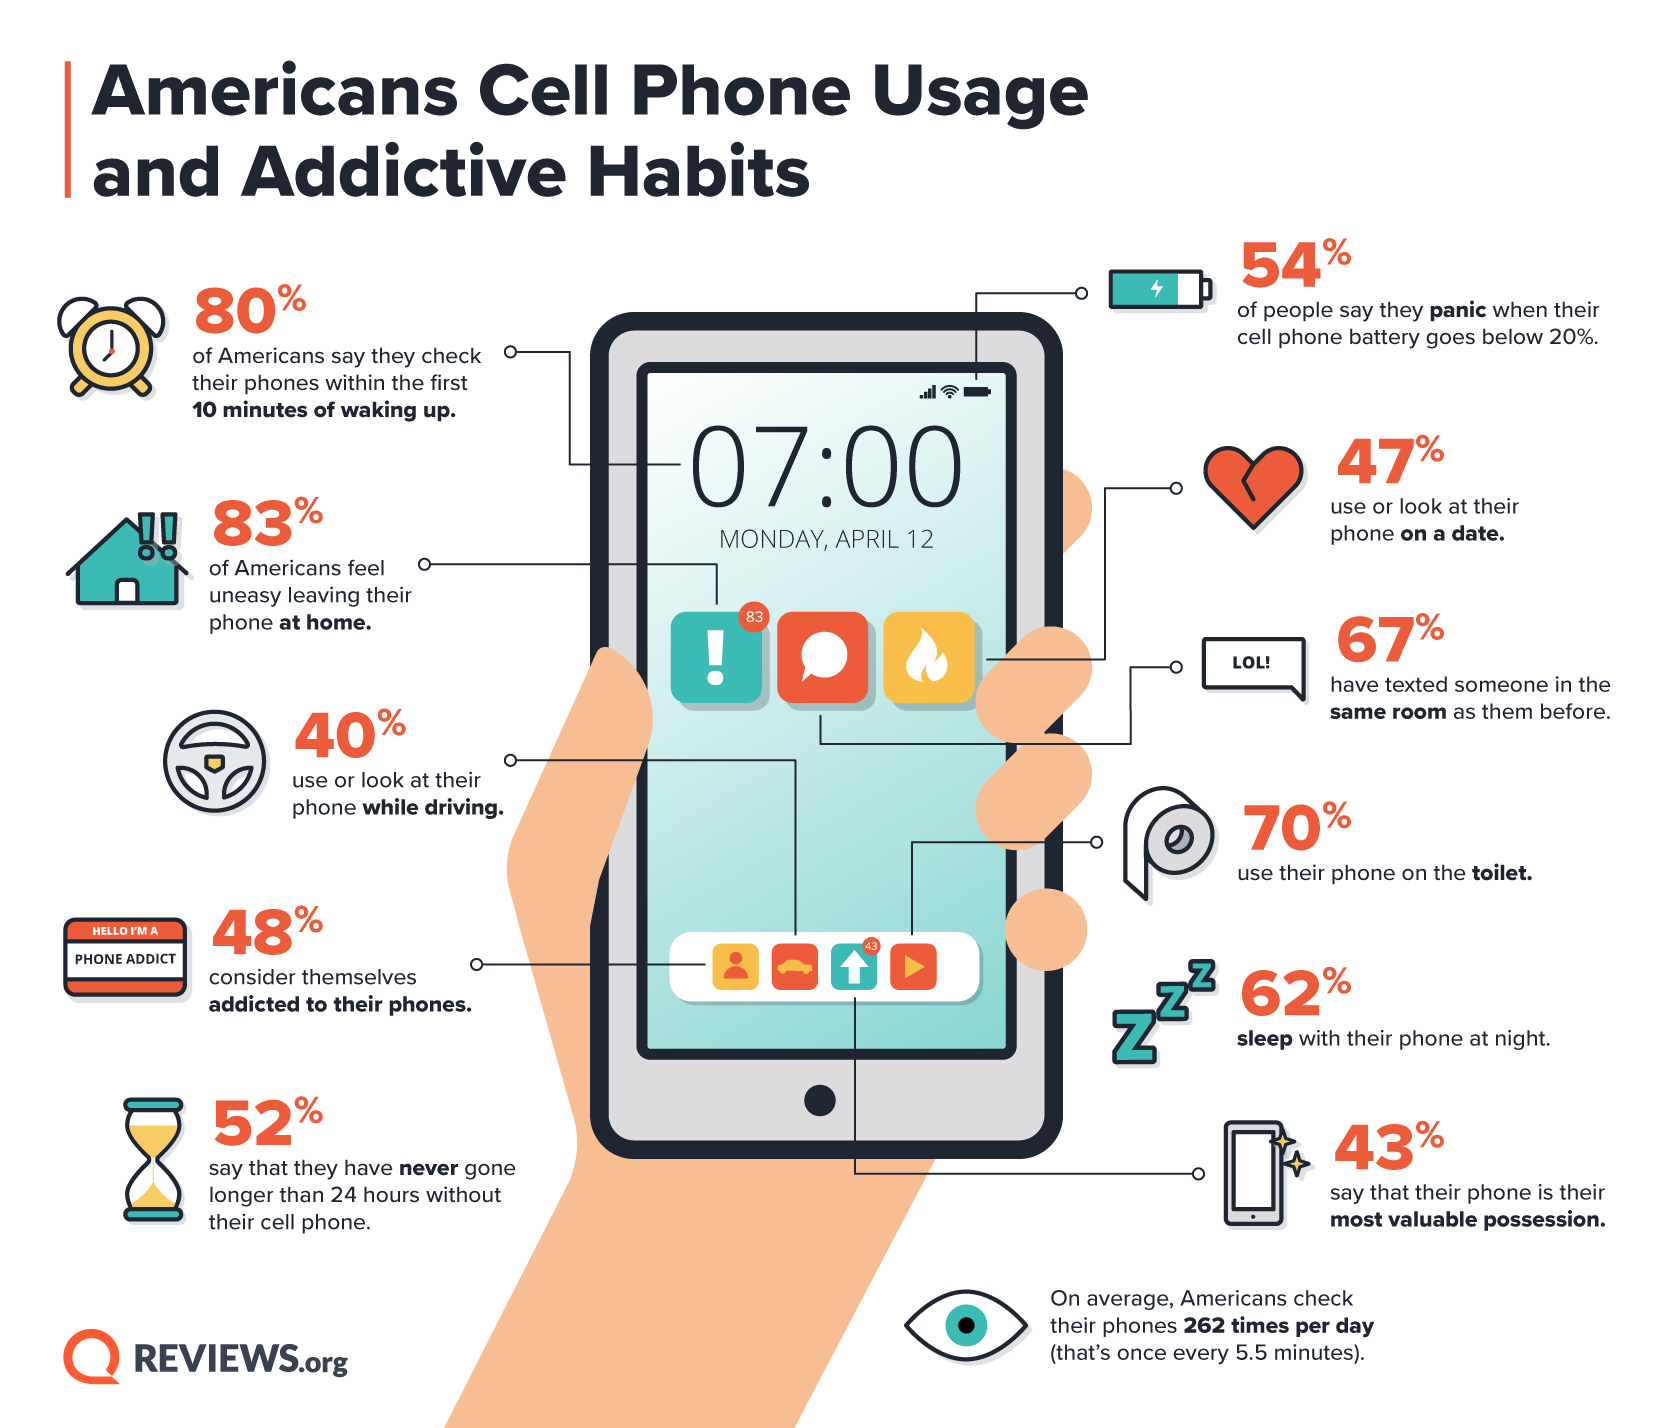 Graphic including statistics about phone usage and addiction.